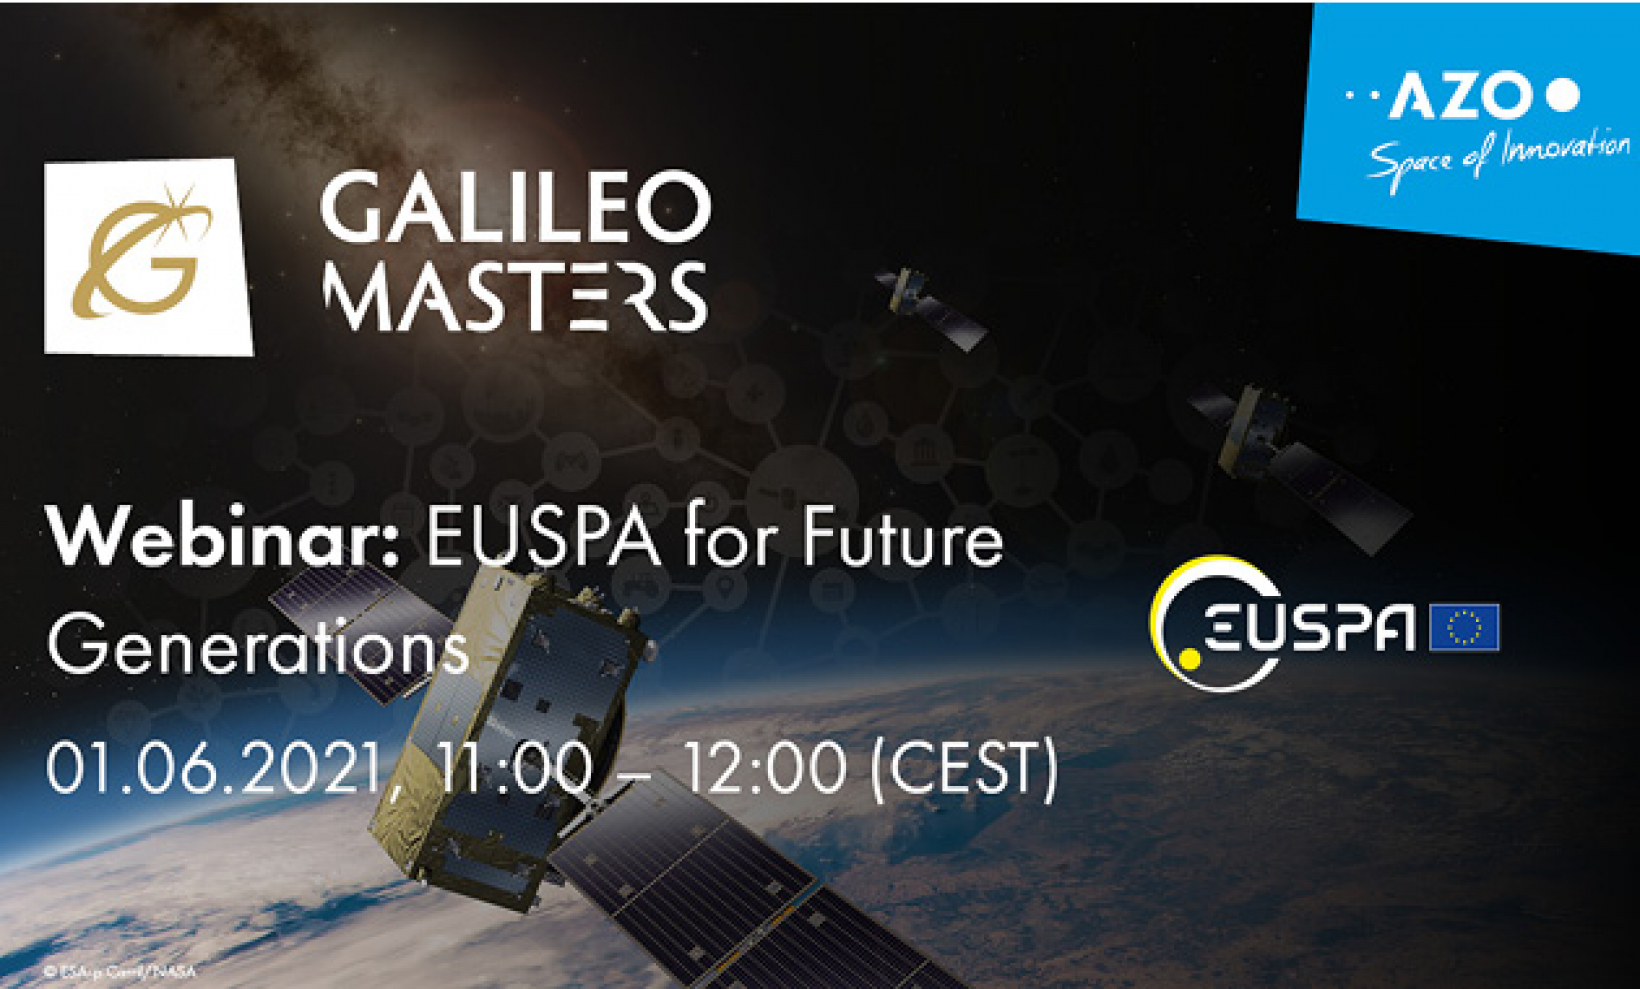 The deadline for submissions in this year's Galileo Masters is July 19